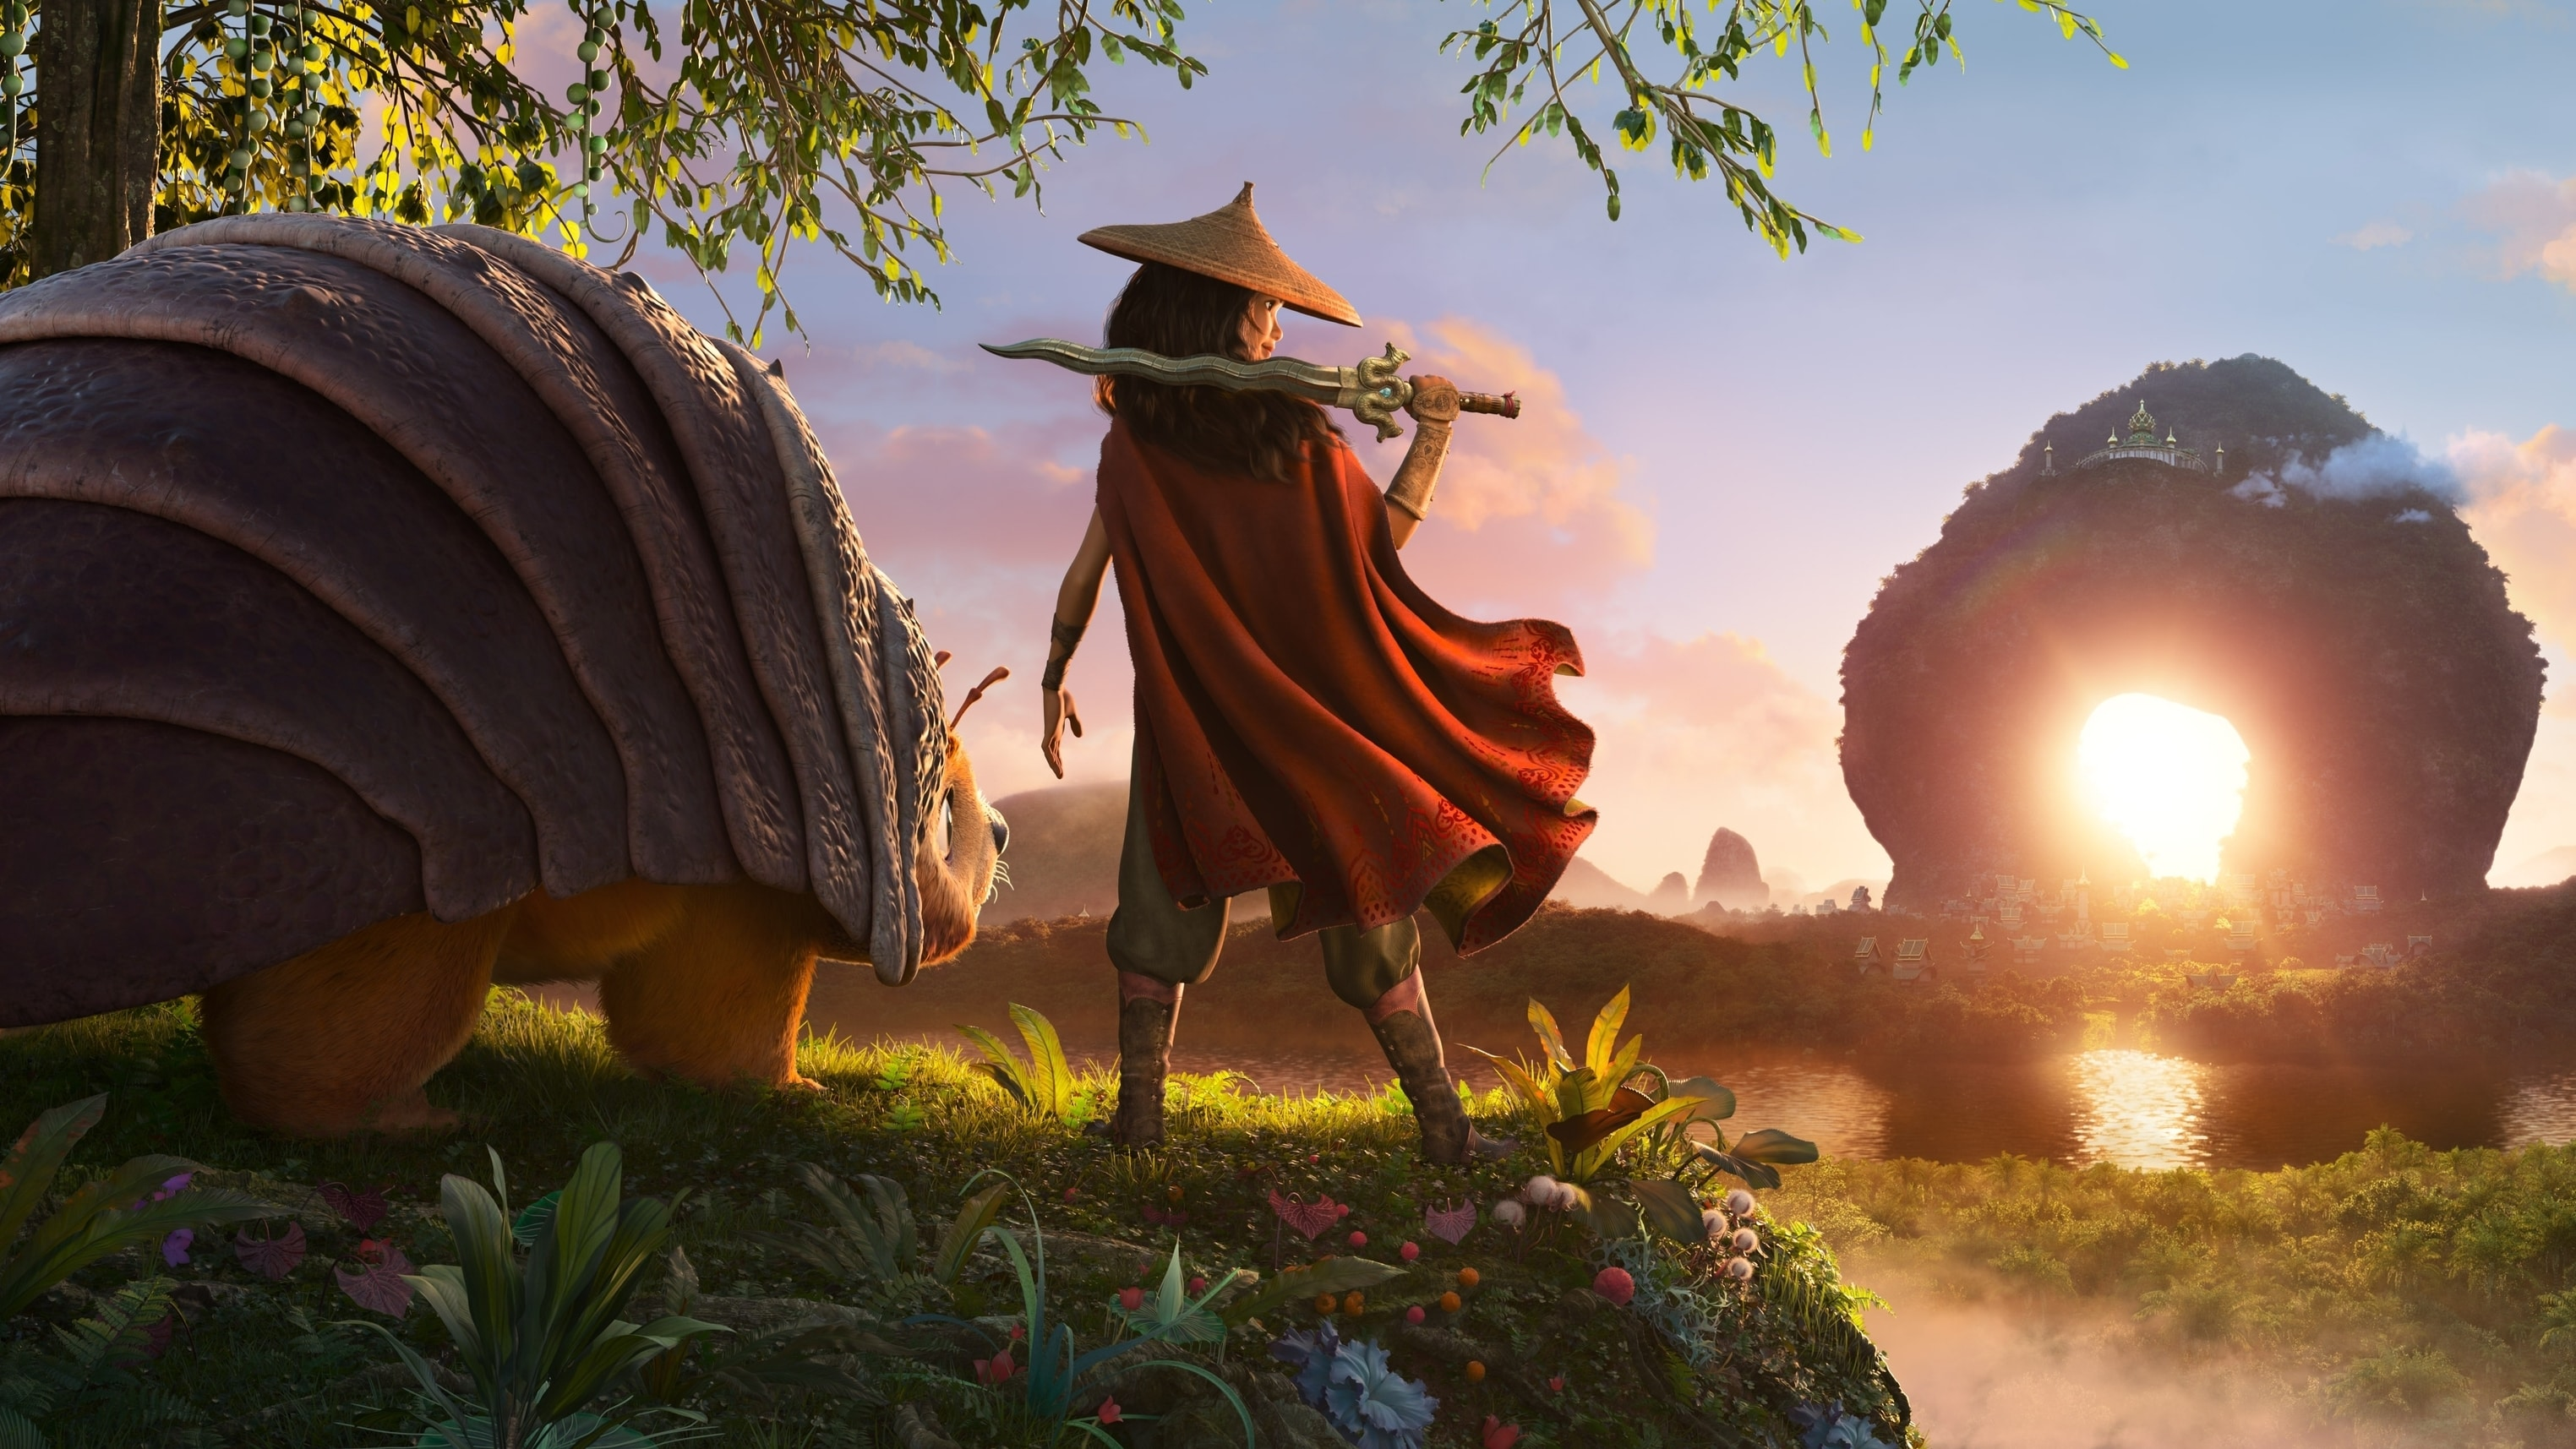 As an evil force threatens the kingdom of Kumandra, it is up to warrior Raya, and her trusty steed Tuk Tuk, to leave their Heart Lands home and track down the last dragon to help stop the villainous Druun. © 2020 Disney. All Rights Reserved.